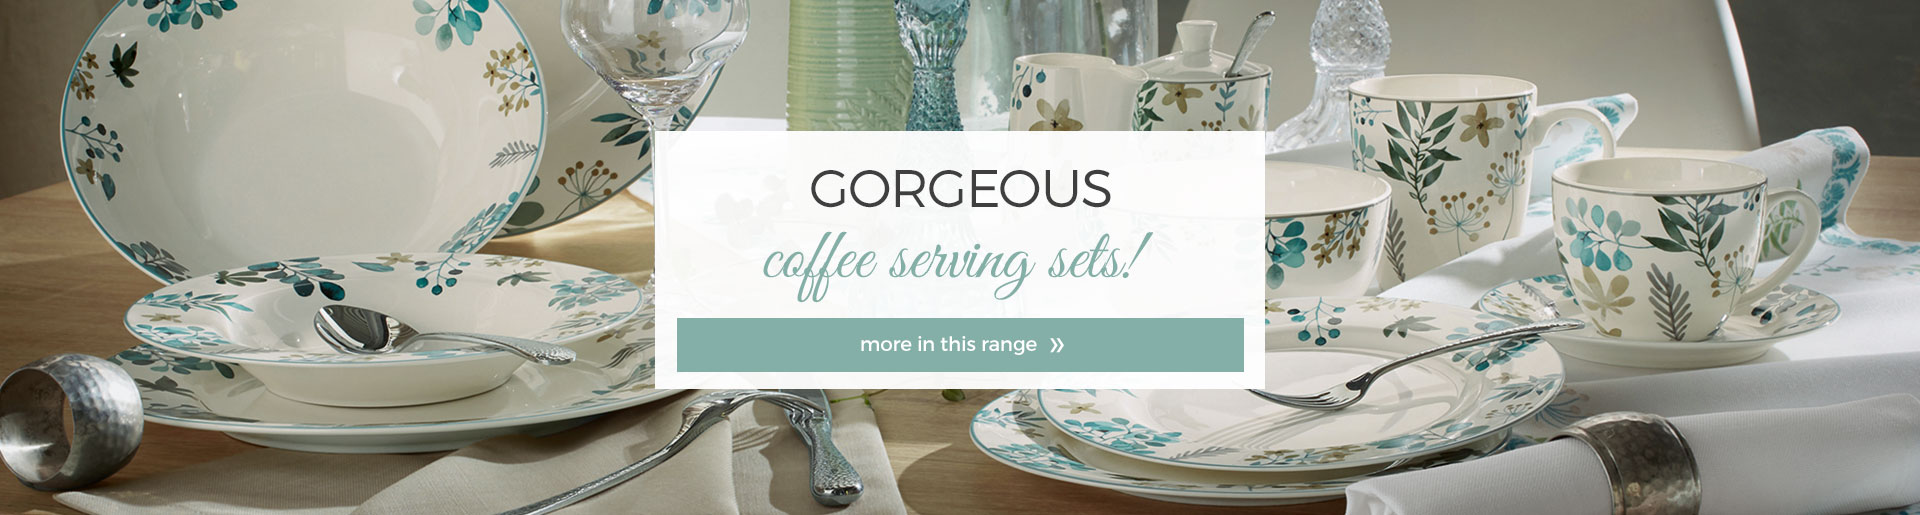 Gorgeous coffee serving sets